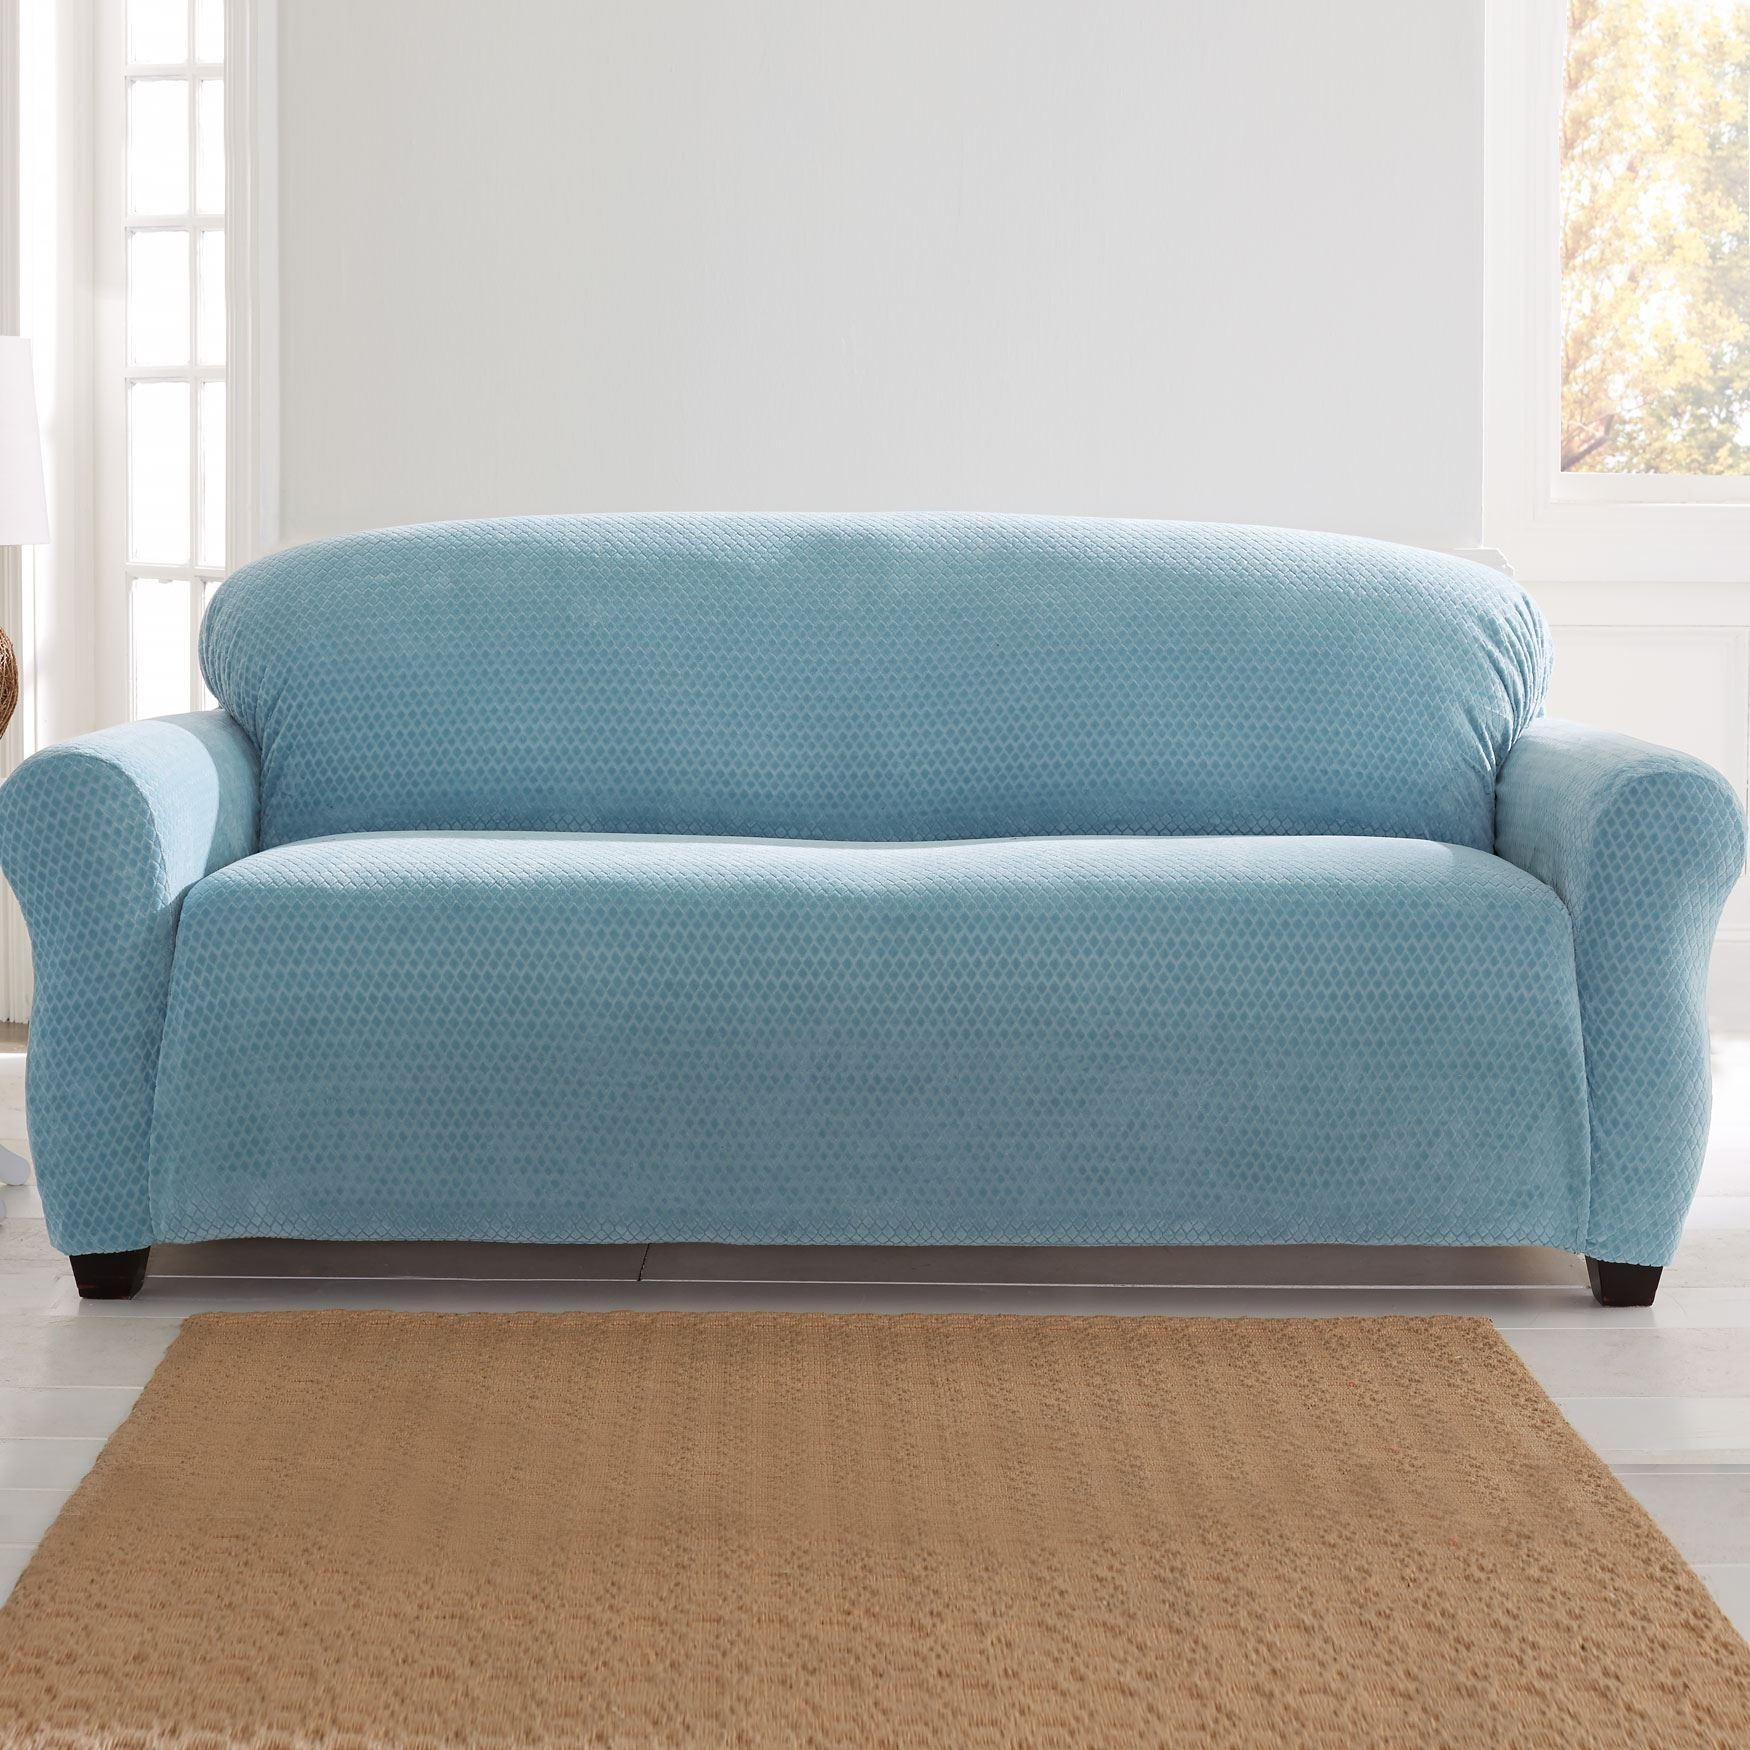 Furniture: Cool Stretch Sofa Covers To Protect And Renew Your Sofa Regarding Stretch Covers For Recliners (View 12 of 20)